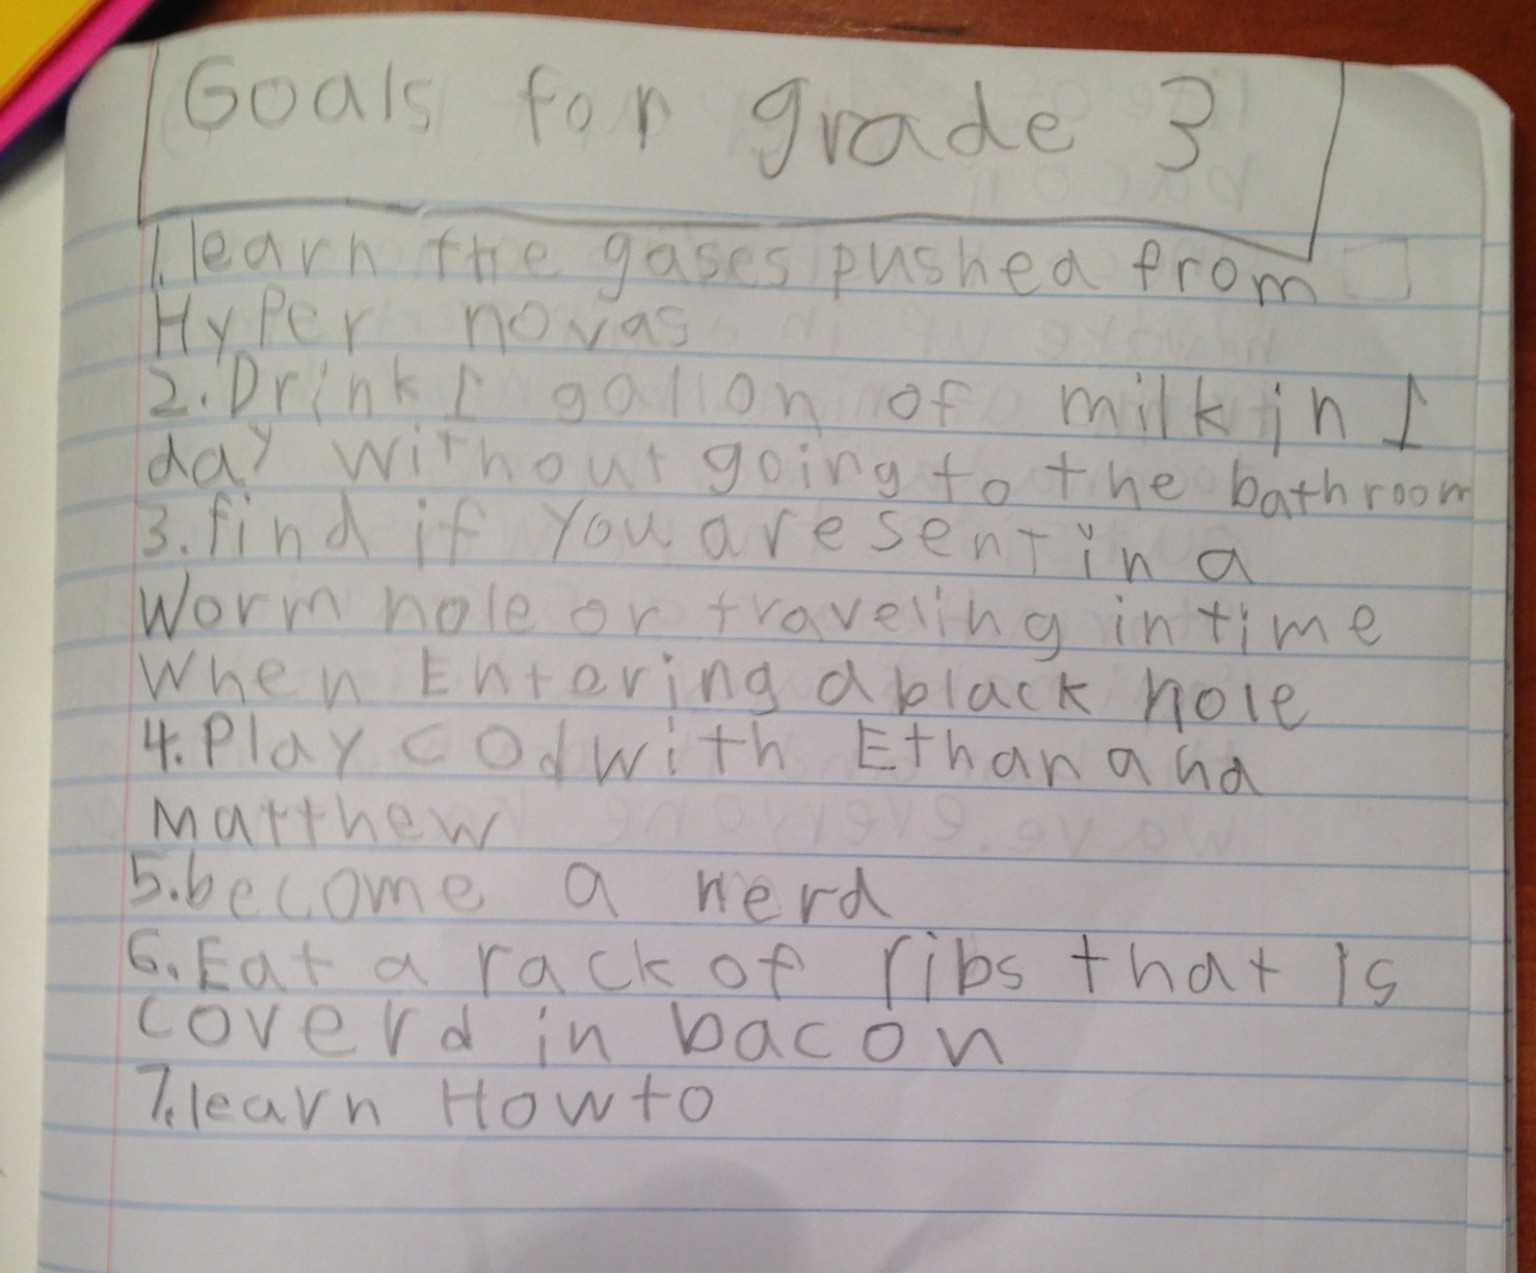 Cute Kid Note Of The Day Goals For Grade 3 HuffPost